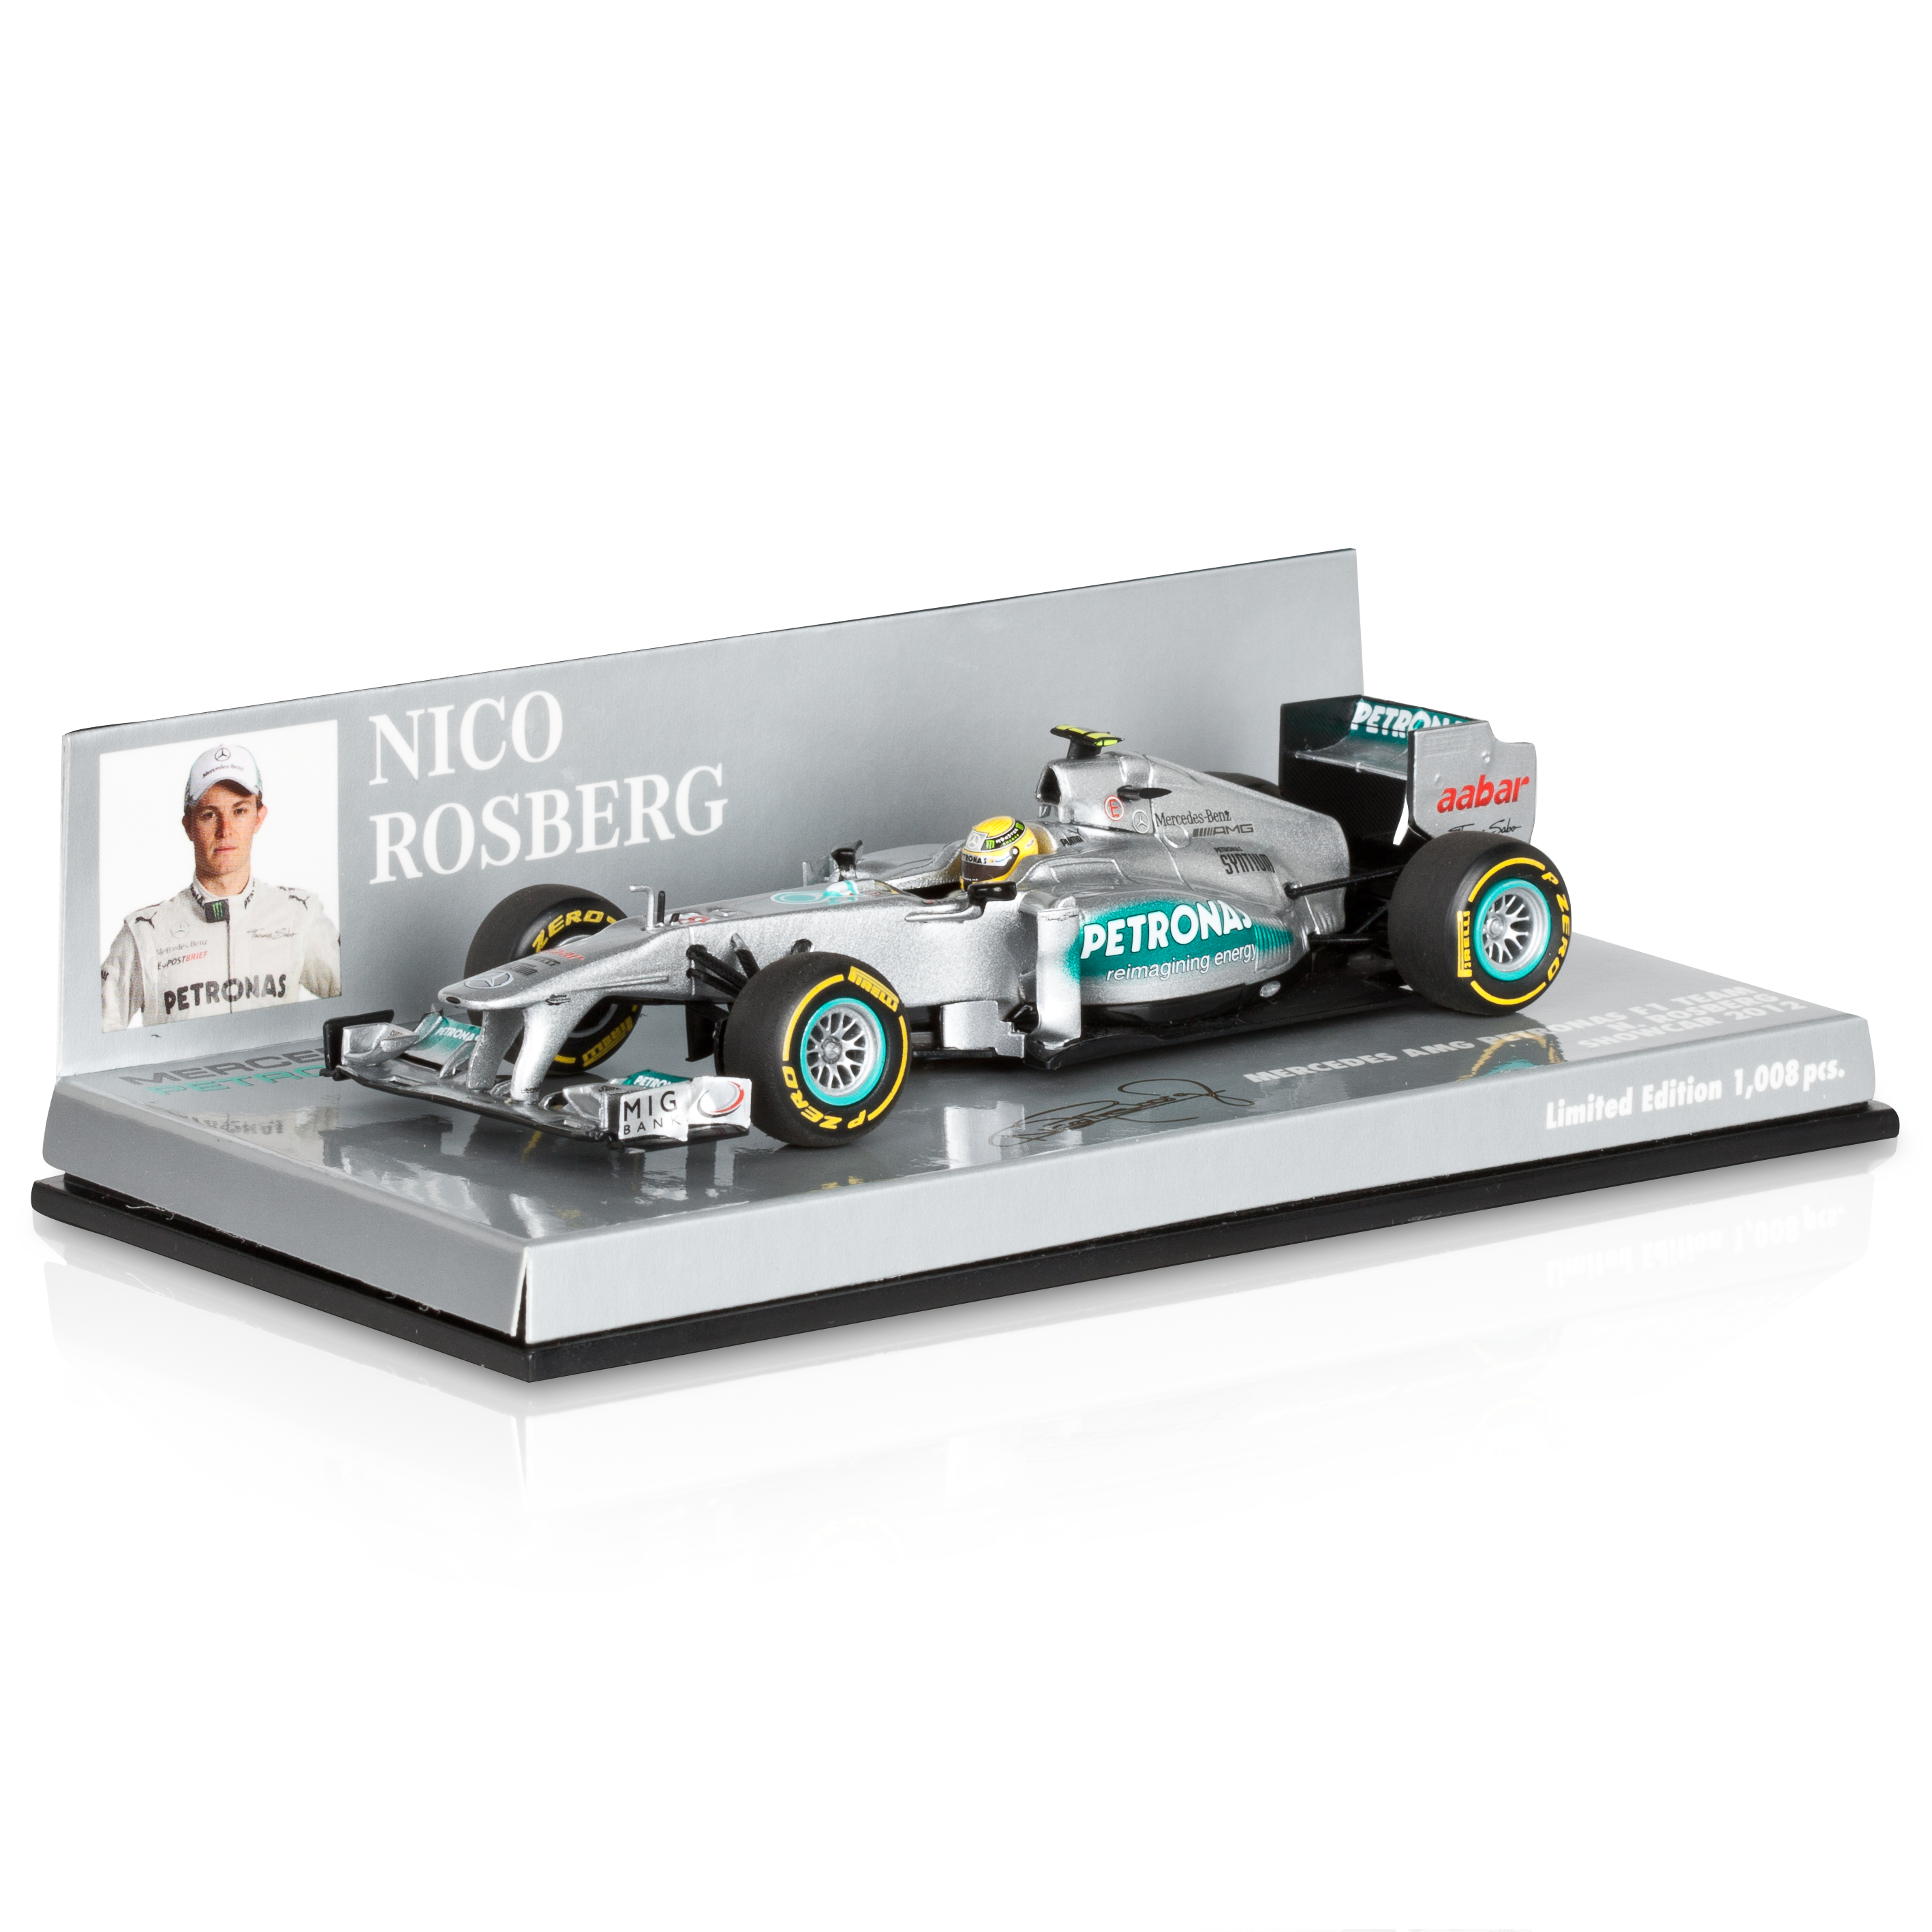 Mercedes AMG F1 Team Nico Rosberg - 2012 1:43 Scale